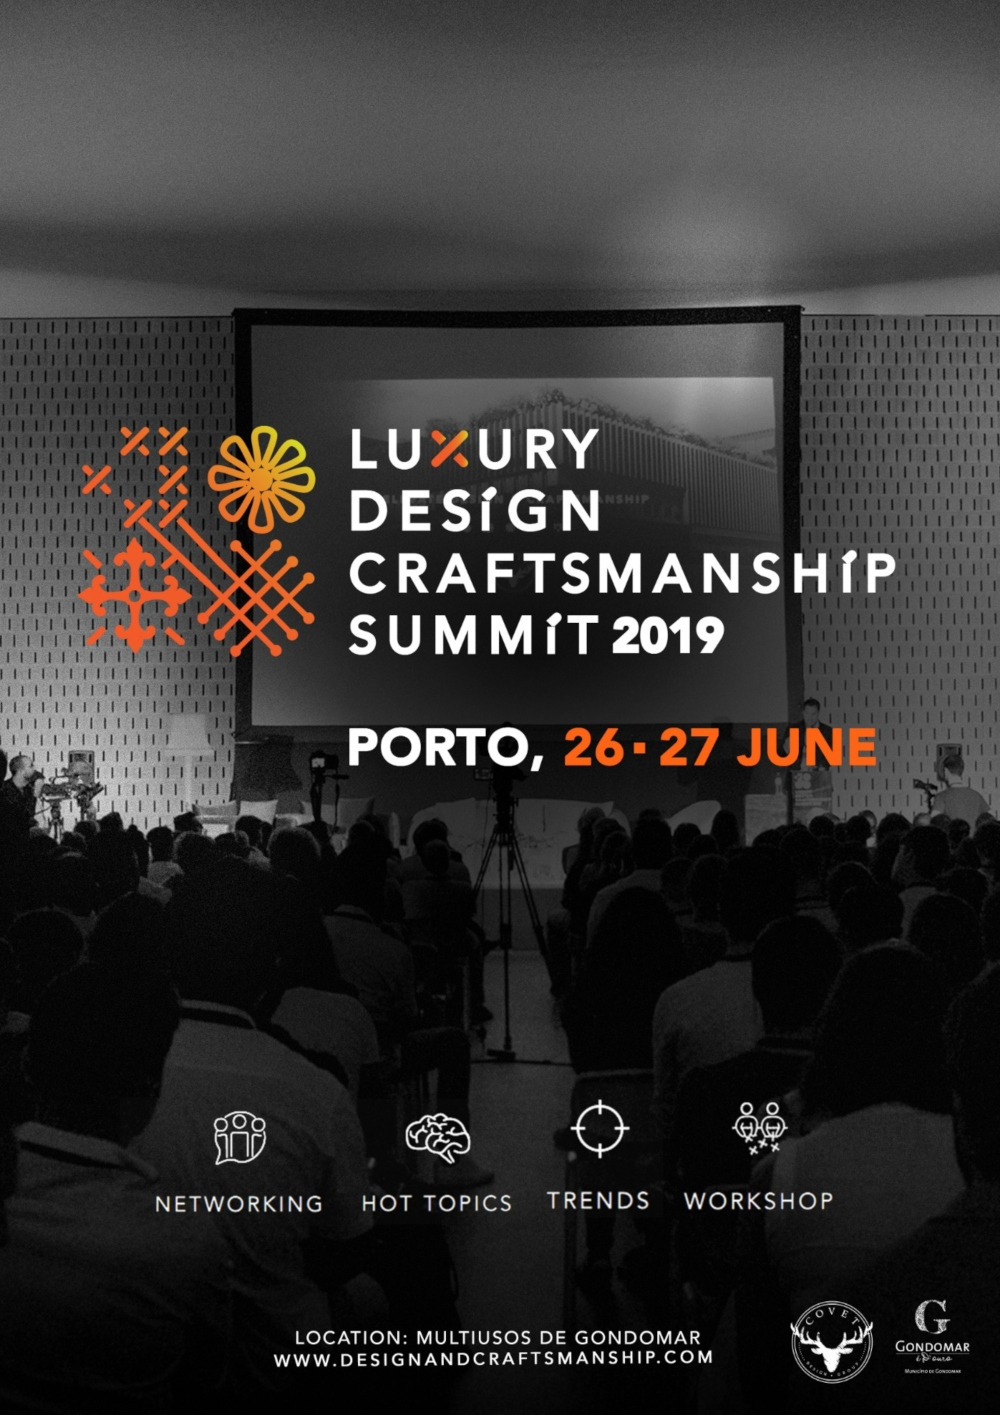 All About The Luxury Design And Craftsmanship Summit 2019 luxury design & craftsmanship summit The Arts in the Luxury Design & Craftsmanship Summit 2018 Celebrating Craftsmanship The Luxury DesignCraftsmanship Summit 2019 2 luxury design & craftsmanship summit The Arts in the Luxury Design & Craftsmanship Summit 2018 Celebrating Craftsmanship The Luxury DesignCraftsmanship Summit 2019 2